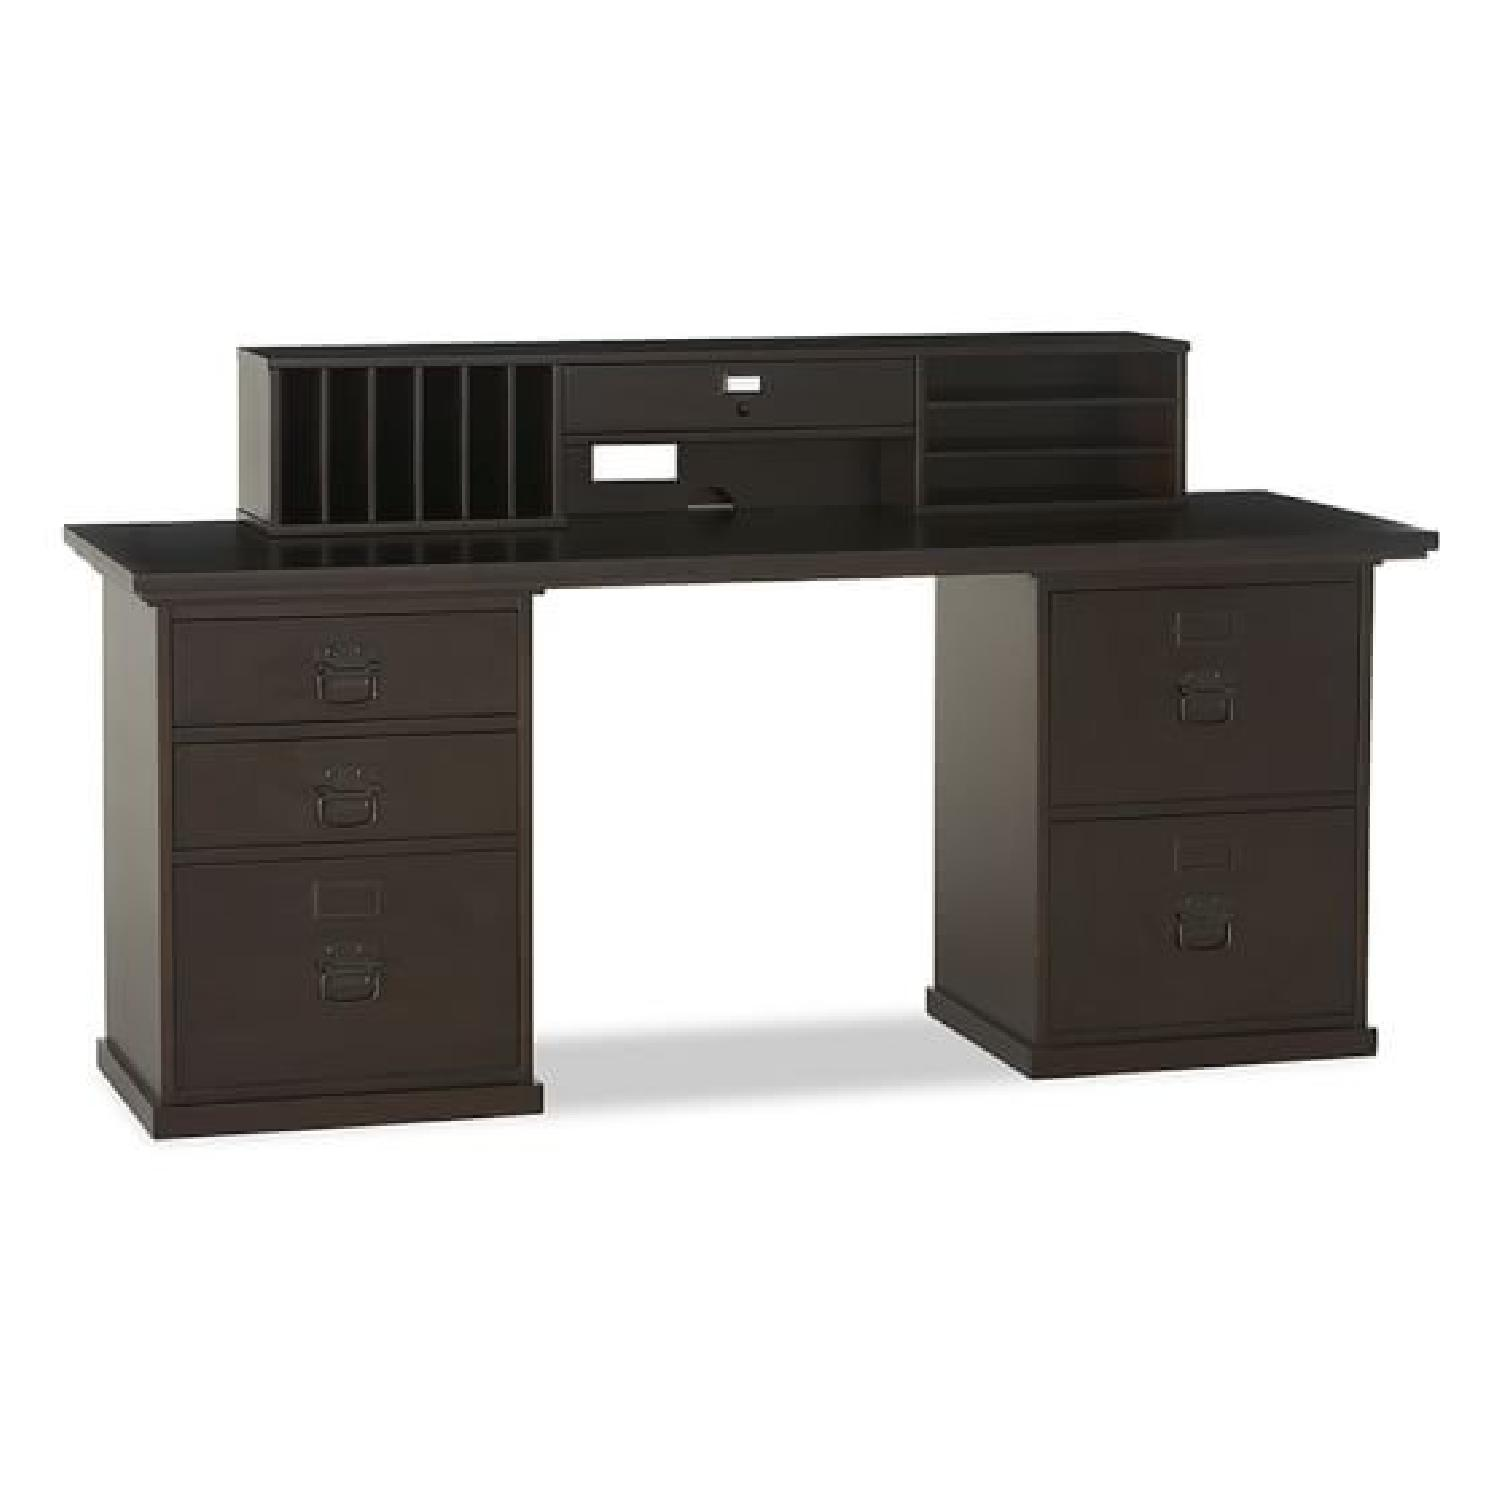 Pottery Barn Bedford Desk w/ Hutch - image-0